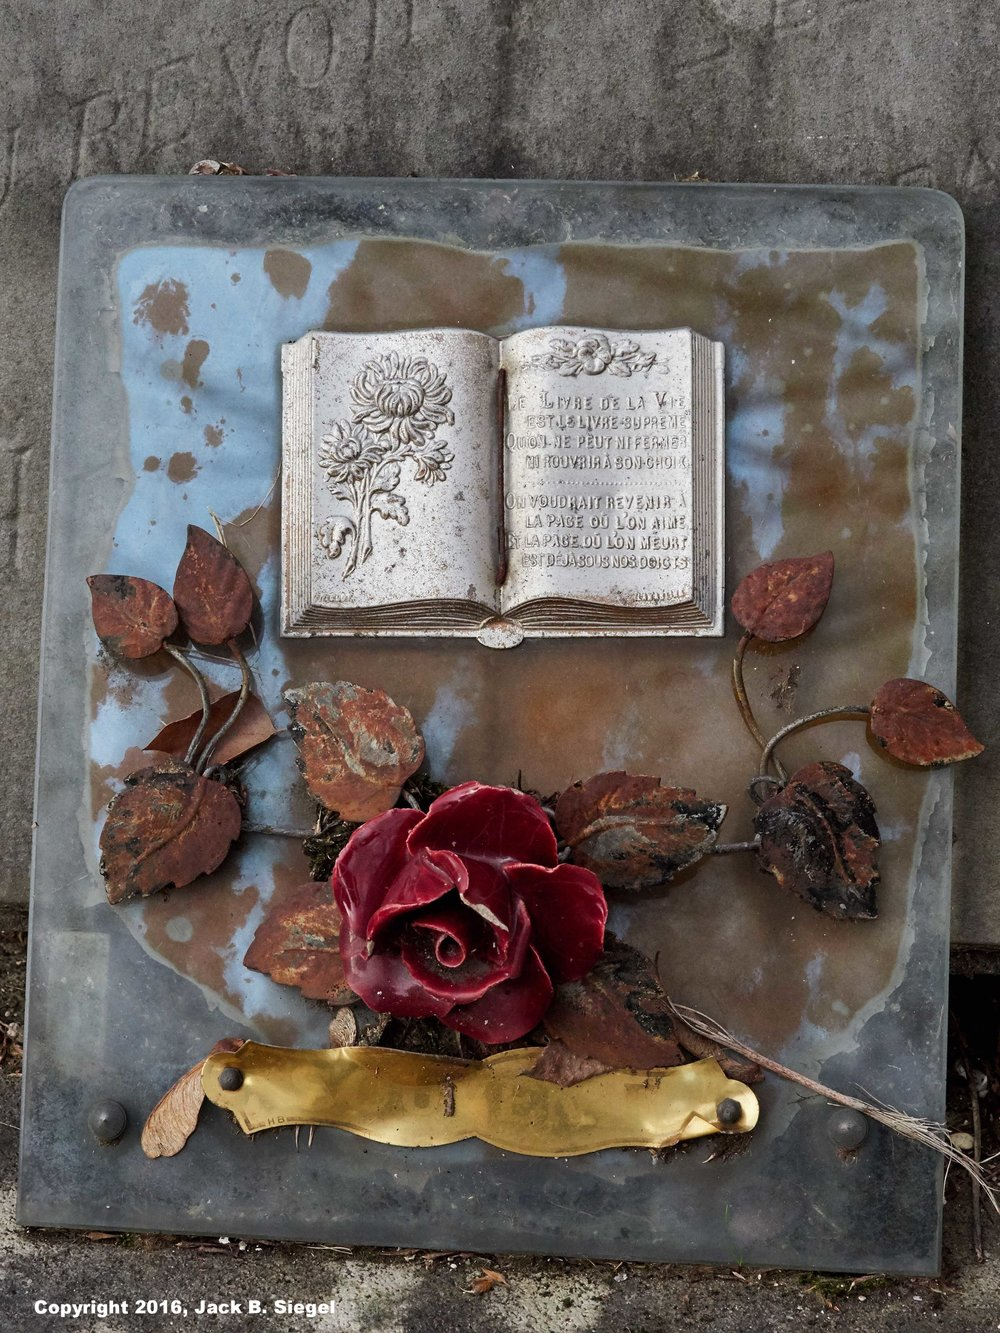 PC200089_sRGB_03_Relative_Grave and Roses.jpg